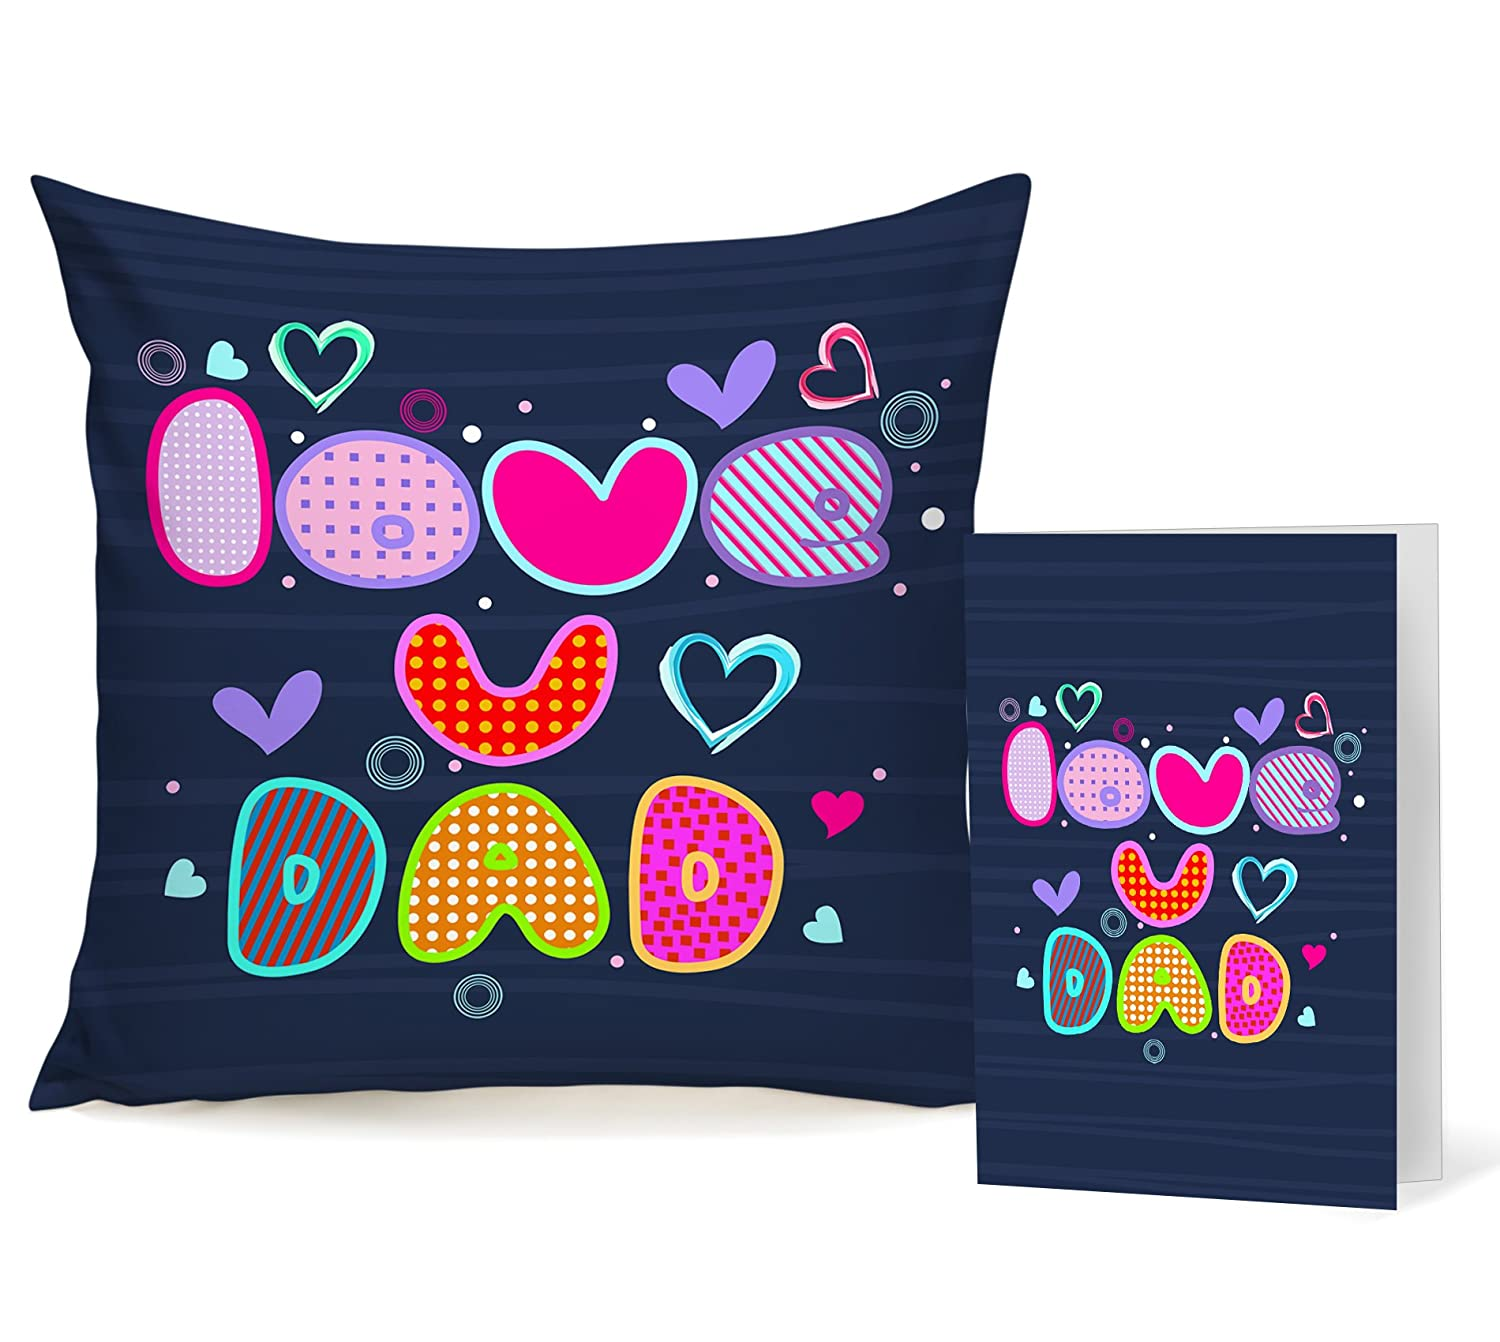 dd13ff29 Buy TIED RIBBONS Gift for Father Greeting Card and Cushion(Satin,  Multicolor, 12 inch X 12 inch) with Filler Online at Low Prices in India -  Amazon.in